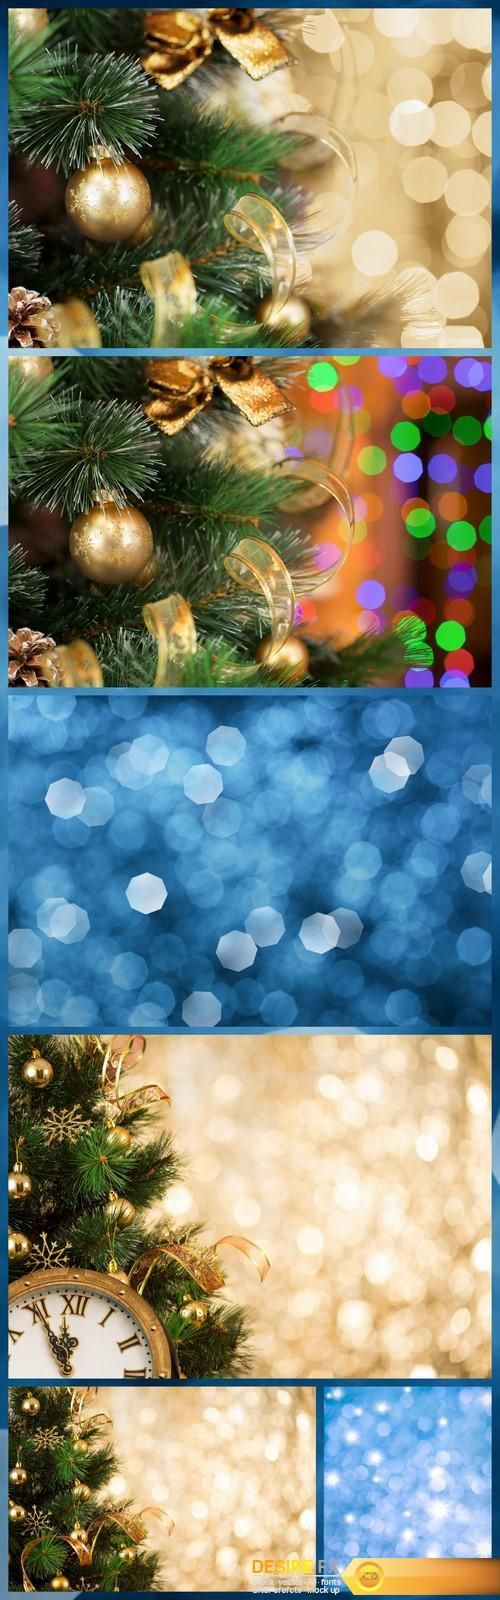 Christmas tree background with gold blurred light 6X JPEG  http://www.desirefx.me/christmas-tree-background-with-gold-blurred-light-6x-jpeg/